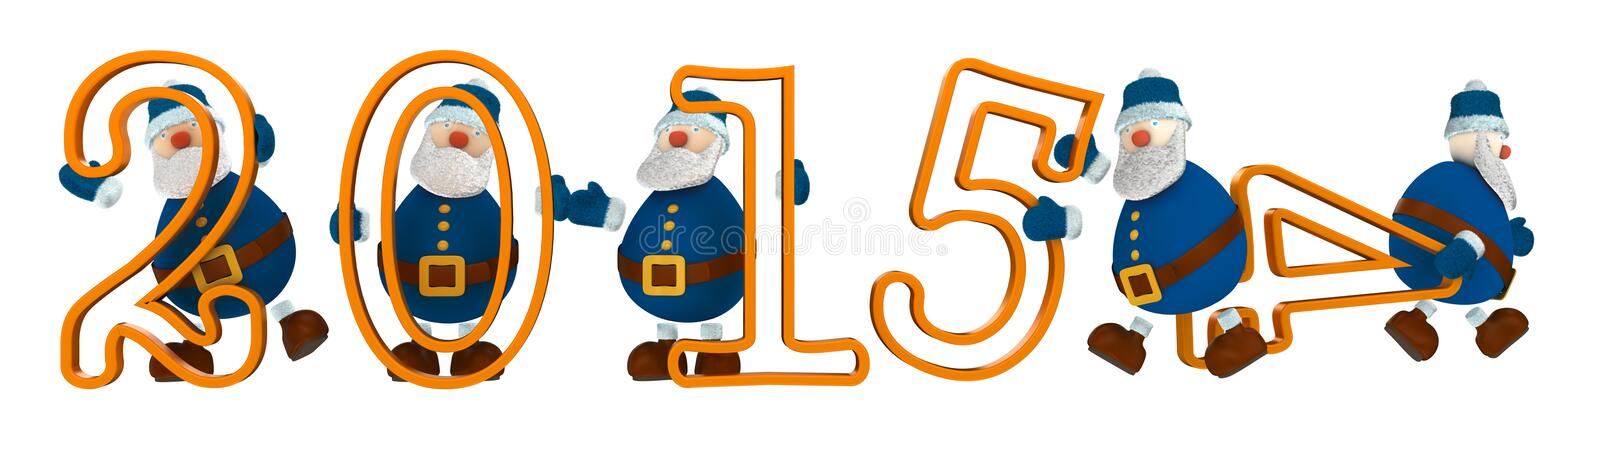 3D render with year 2015 with digits held by cartoony old men dressed in blue royalty free stock photo